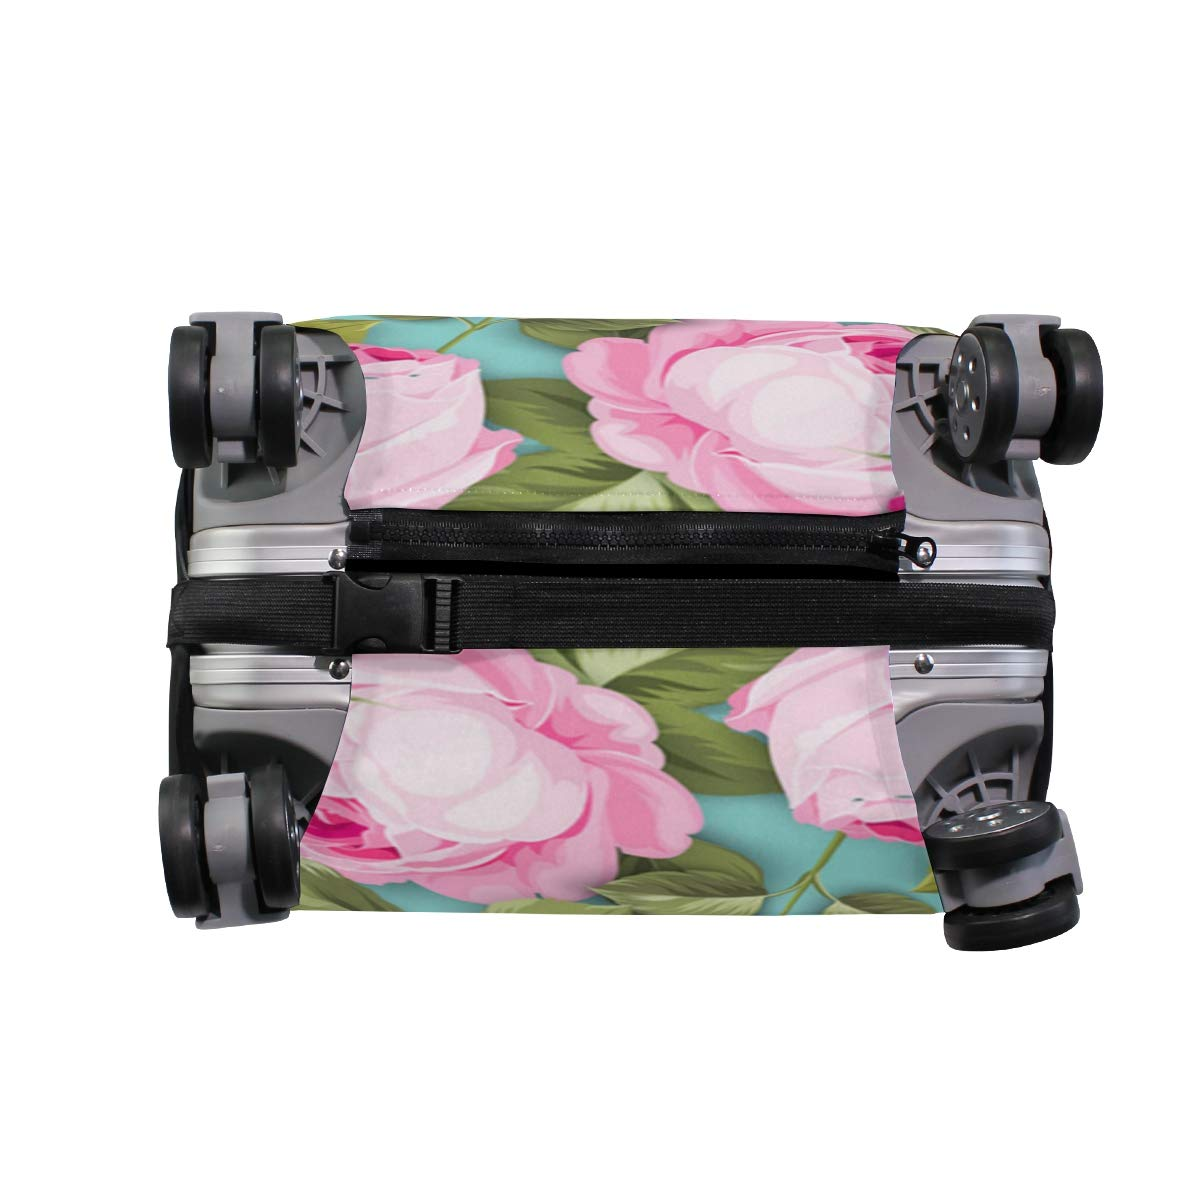 A Bunch Of Flowers Traveler Lightweight Rotating Luggage Protector Case Can Carry With You Can Expand Travel Bag Trolley Rolling Luggage Protector Case